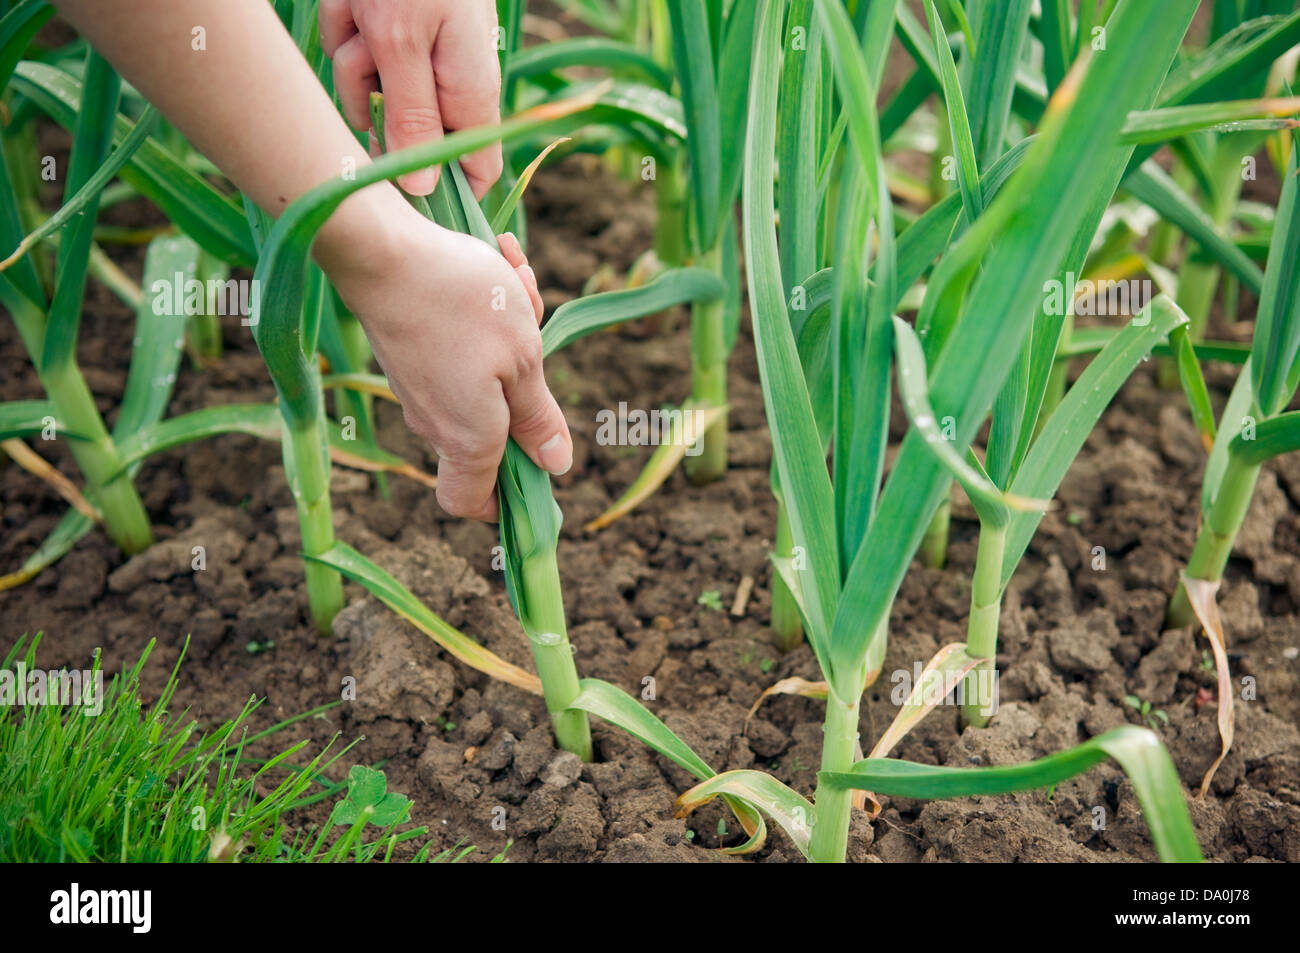 Hands picking young garlic plant from soil - Stock Image